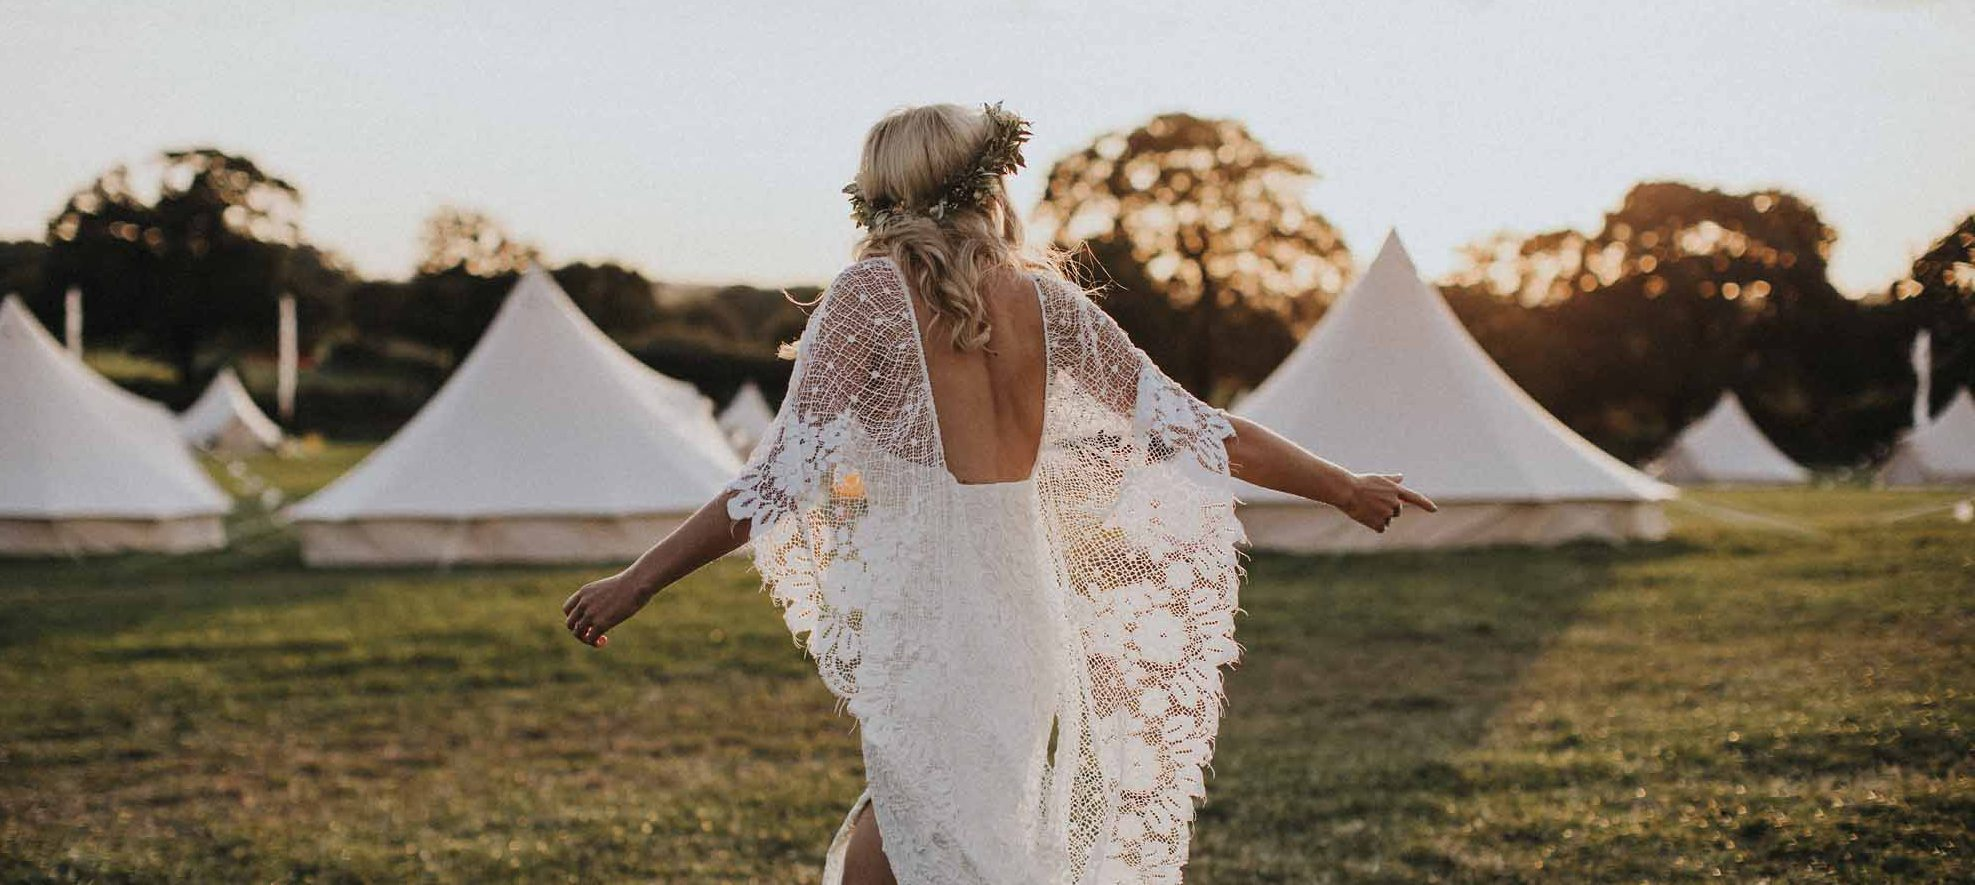 Glamping for Tipi Weddings